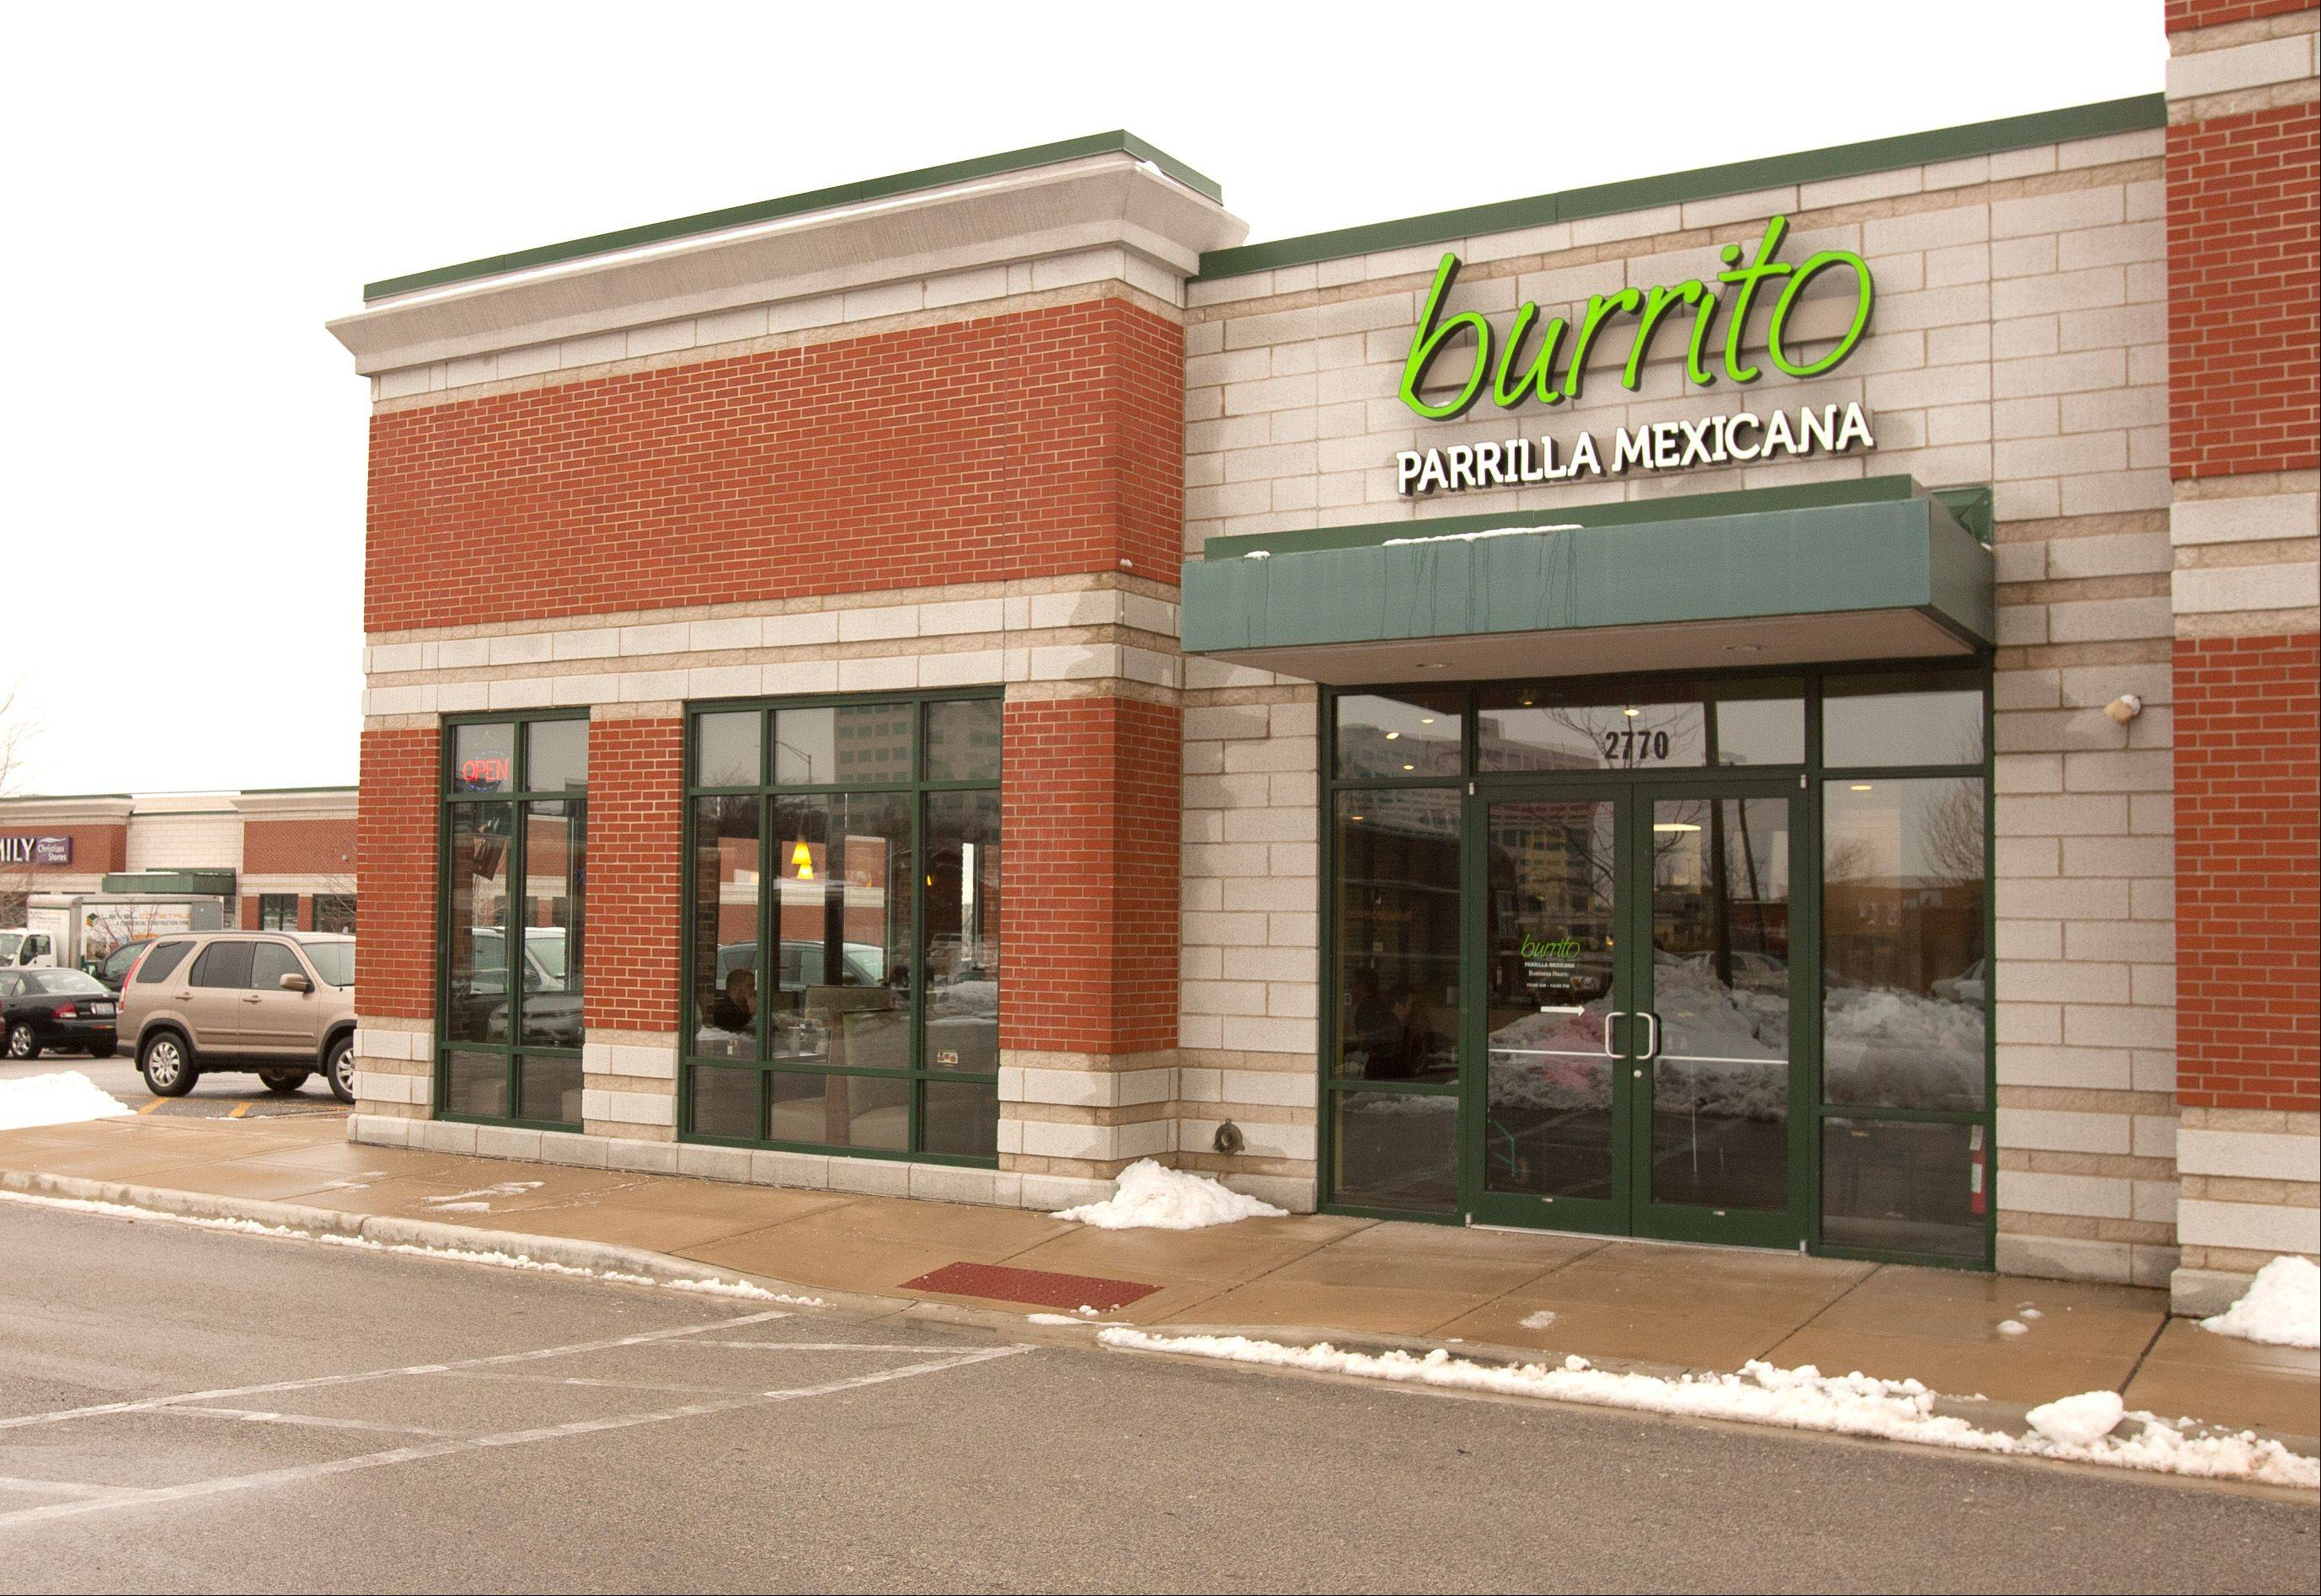 Burrito Parrilla Mexicana sits across from Yorktown Mall at 2770 Highland Ave. in Lombard.